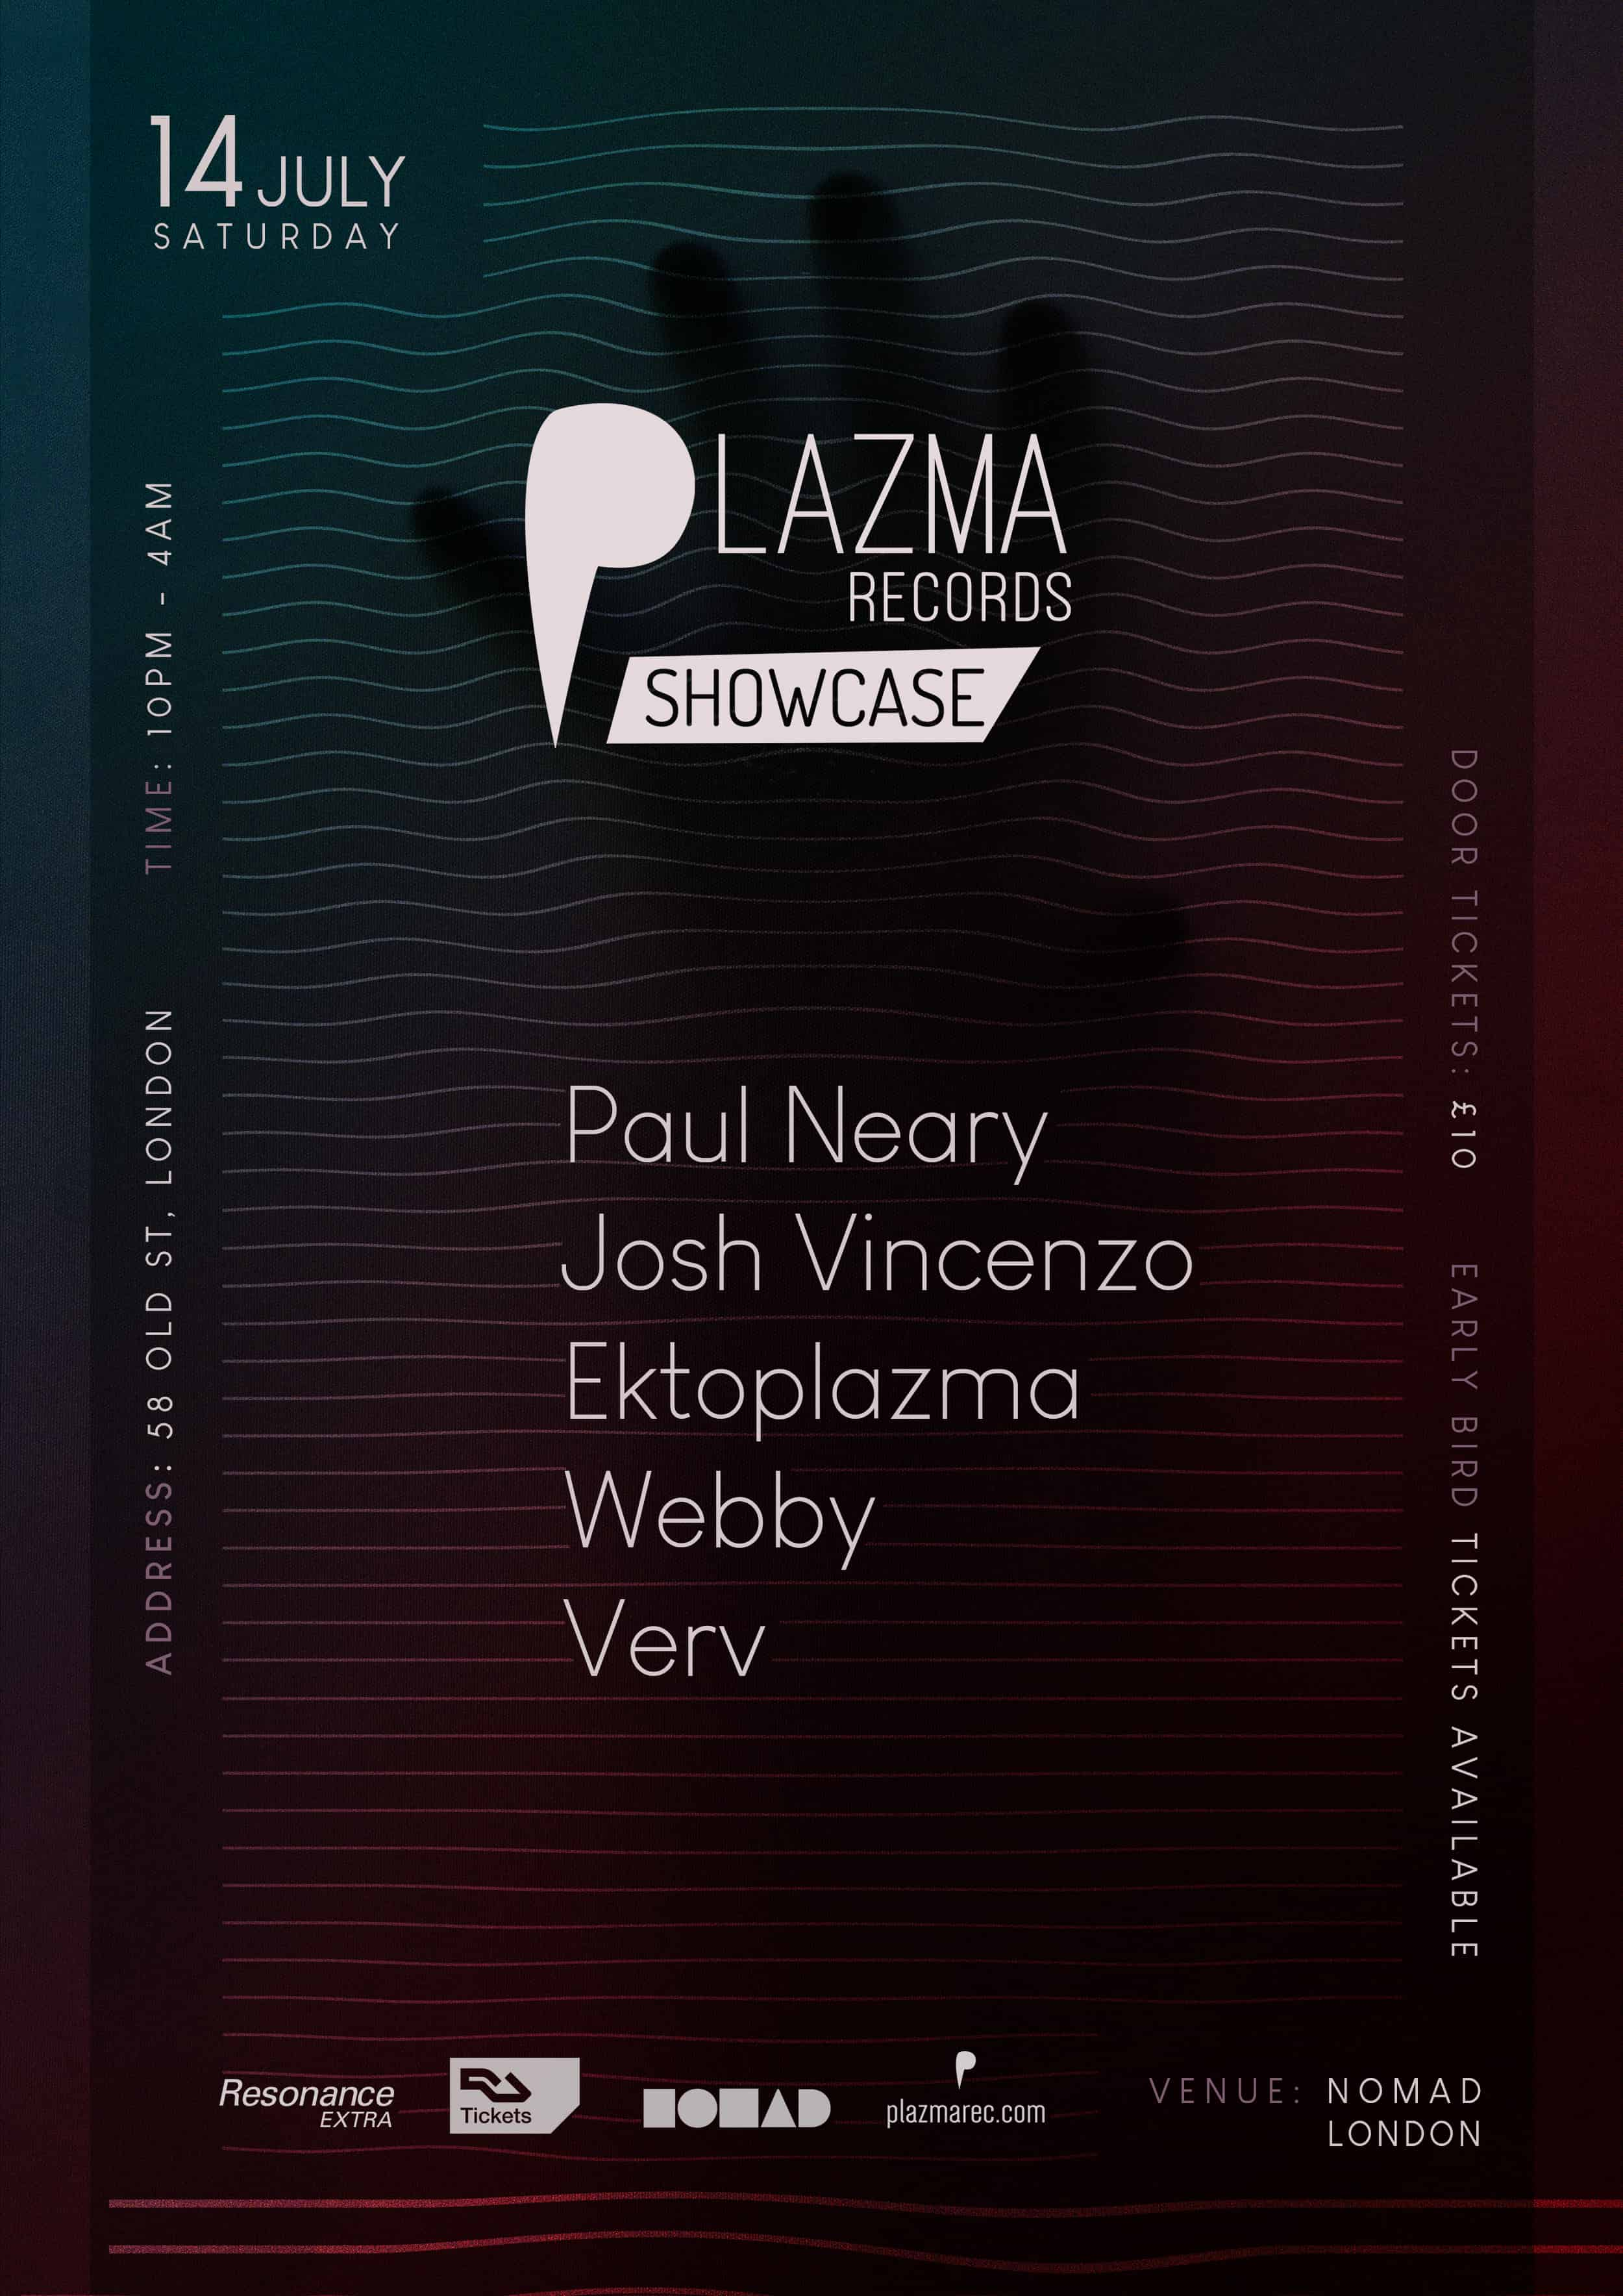 Plazma Records Showcase London | Techno and Minimal event at Nomad Club London